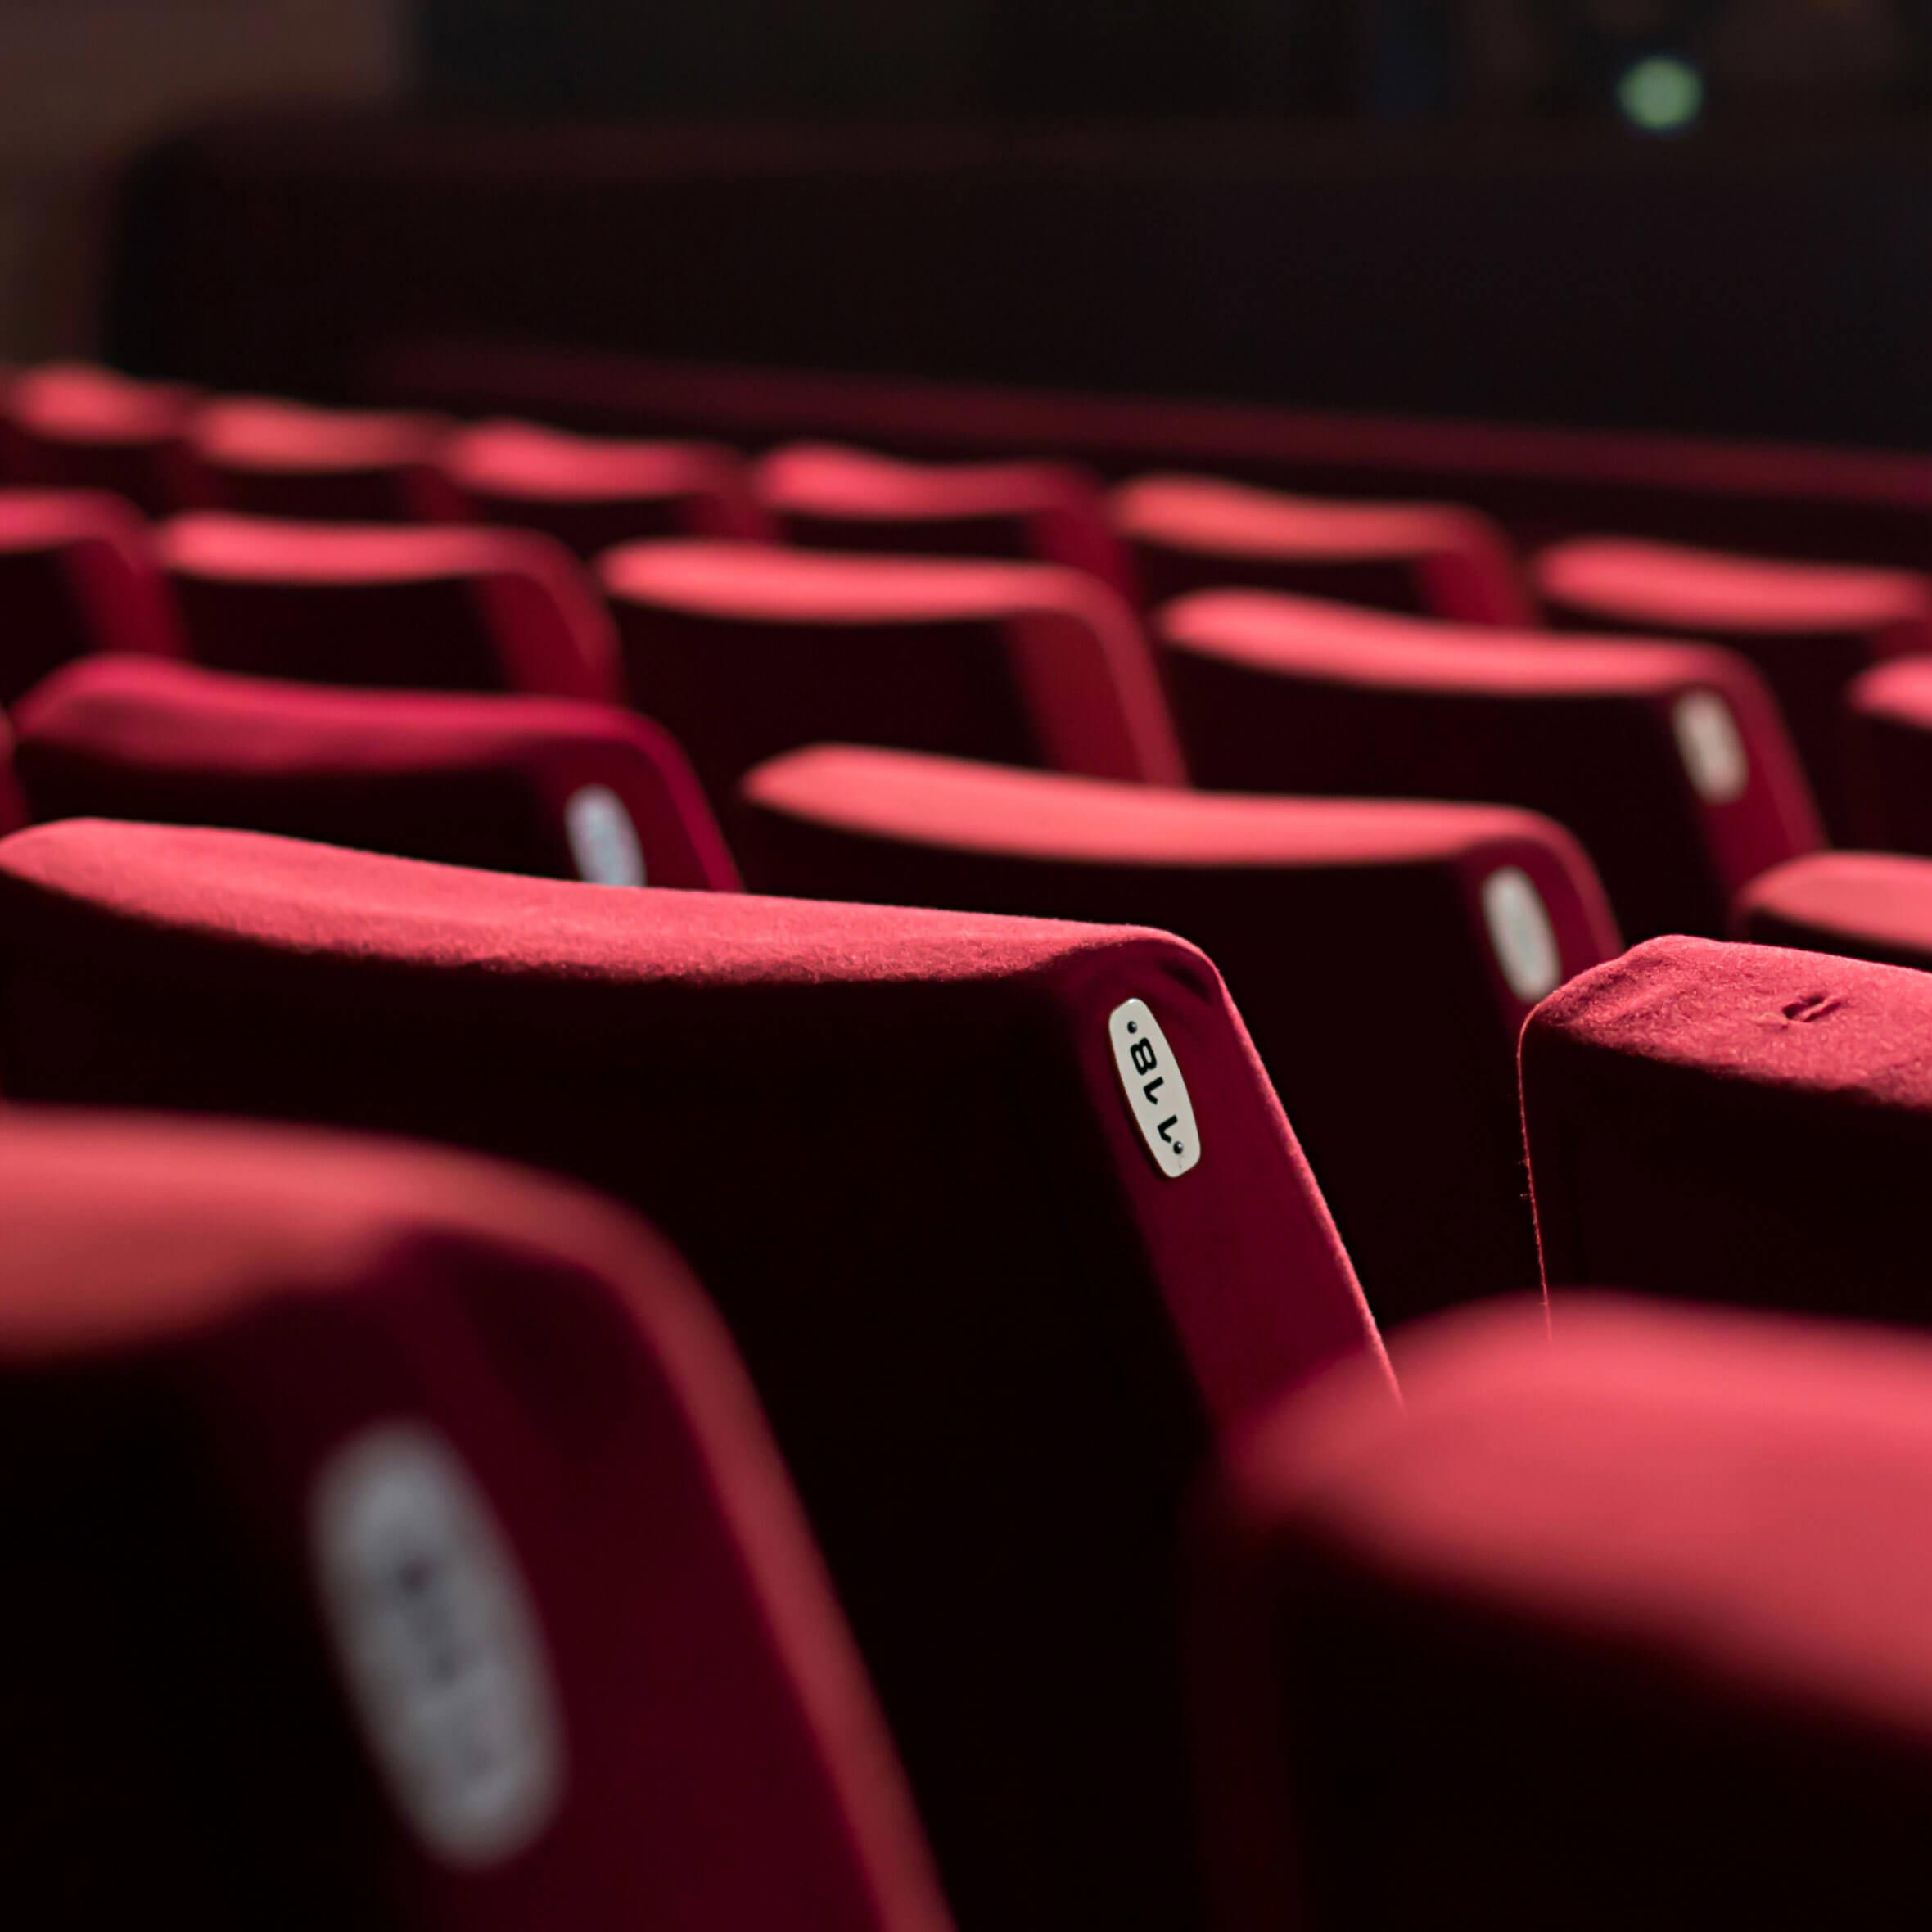 Rows of red seats in a dark theater are similar to those in the movie theaters that sell their tickets on Fandango